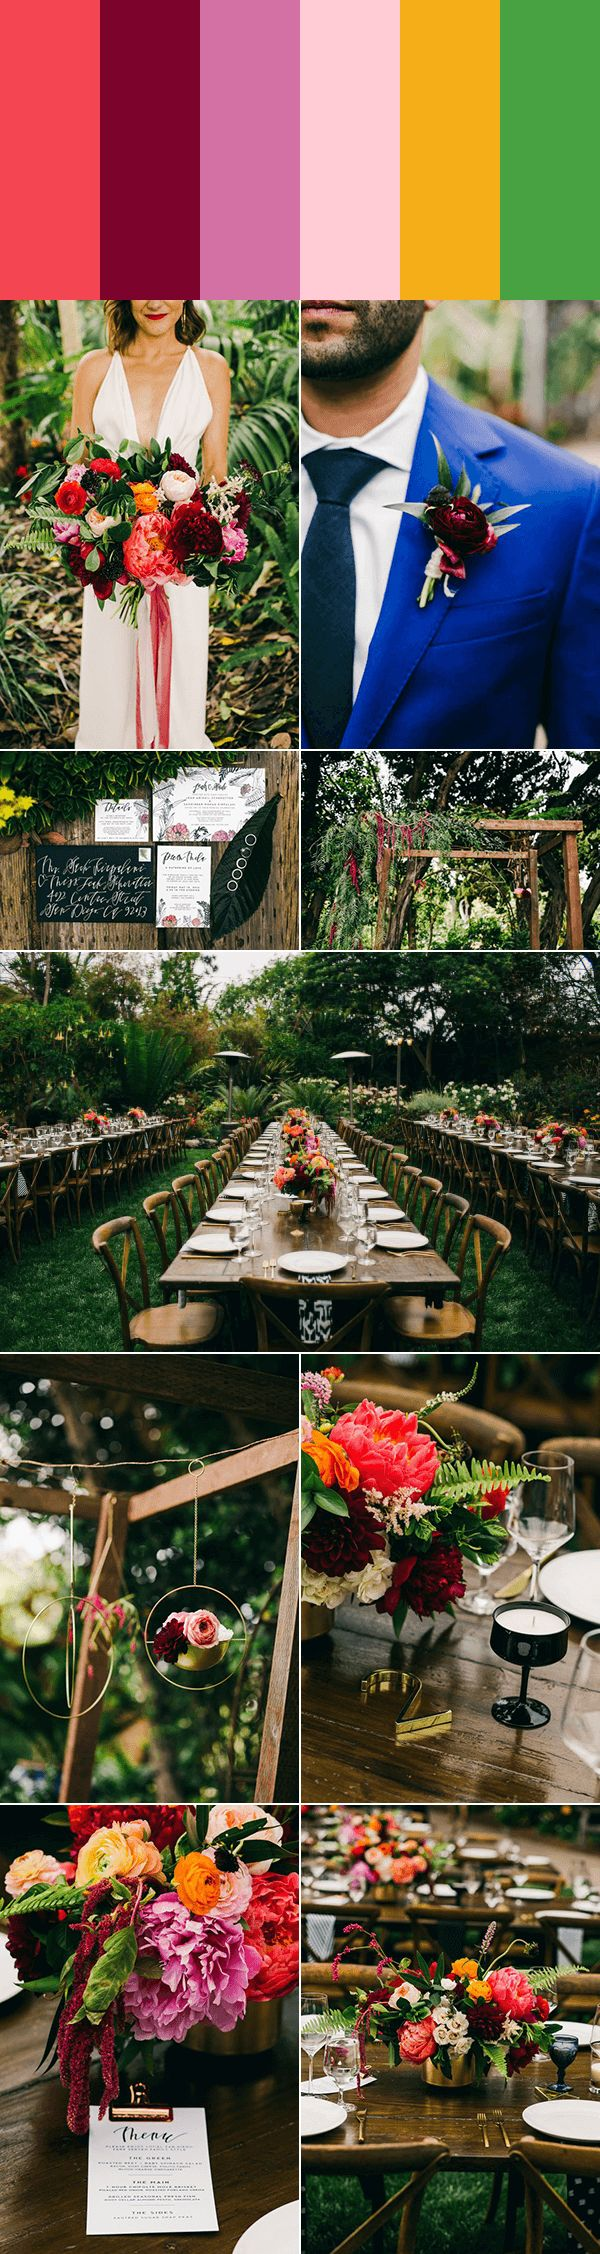 Various shades of pinks and purples with apricot and fern accents | Images by Hannah Costello